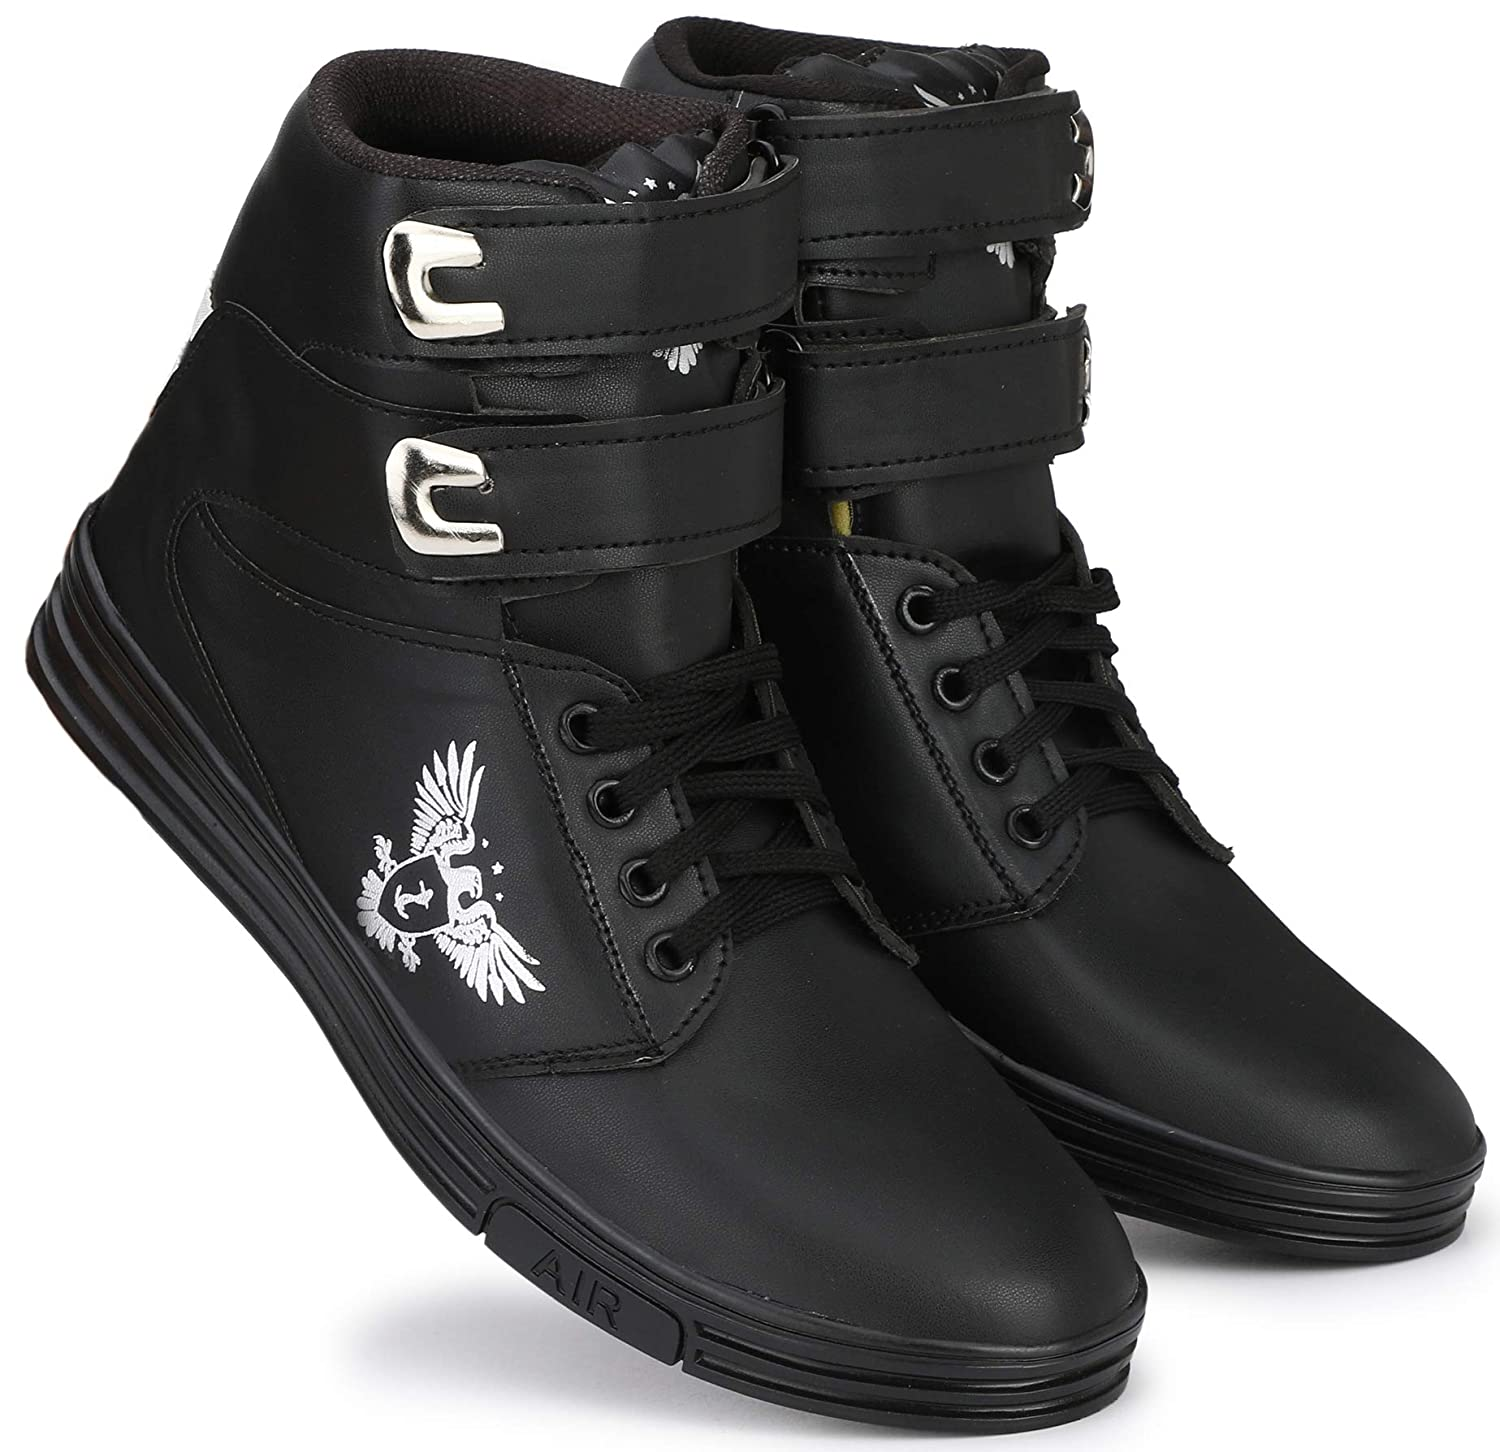 f69bb4fb374e79 Flooristo Funky Mid-Ankle High Neck Sneakers Casual Boots Shoes for Mens/Boys:  Buy Online at Low Prices in India - Amazon.in